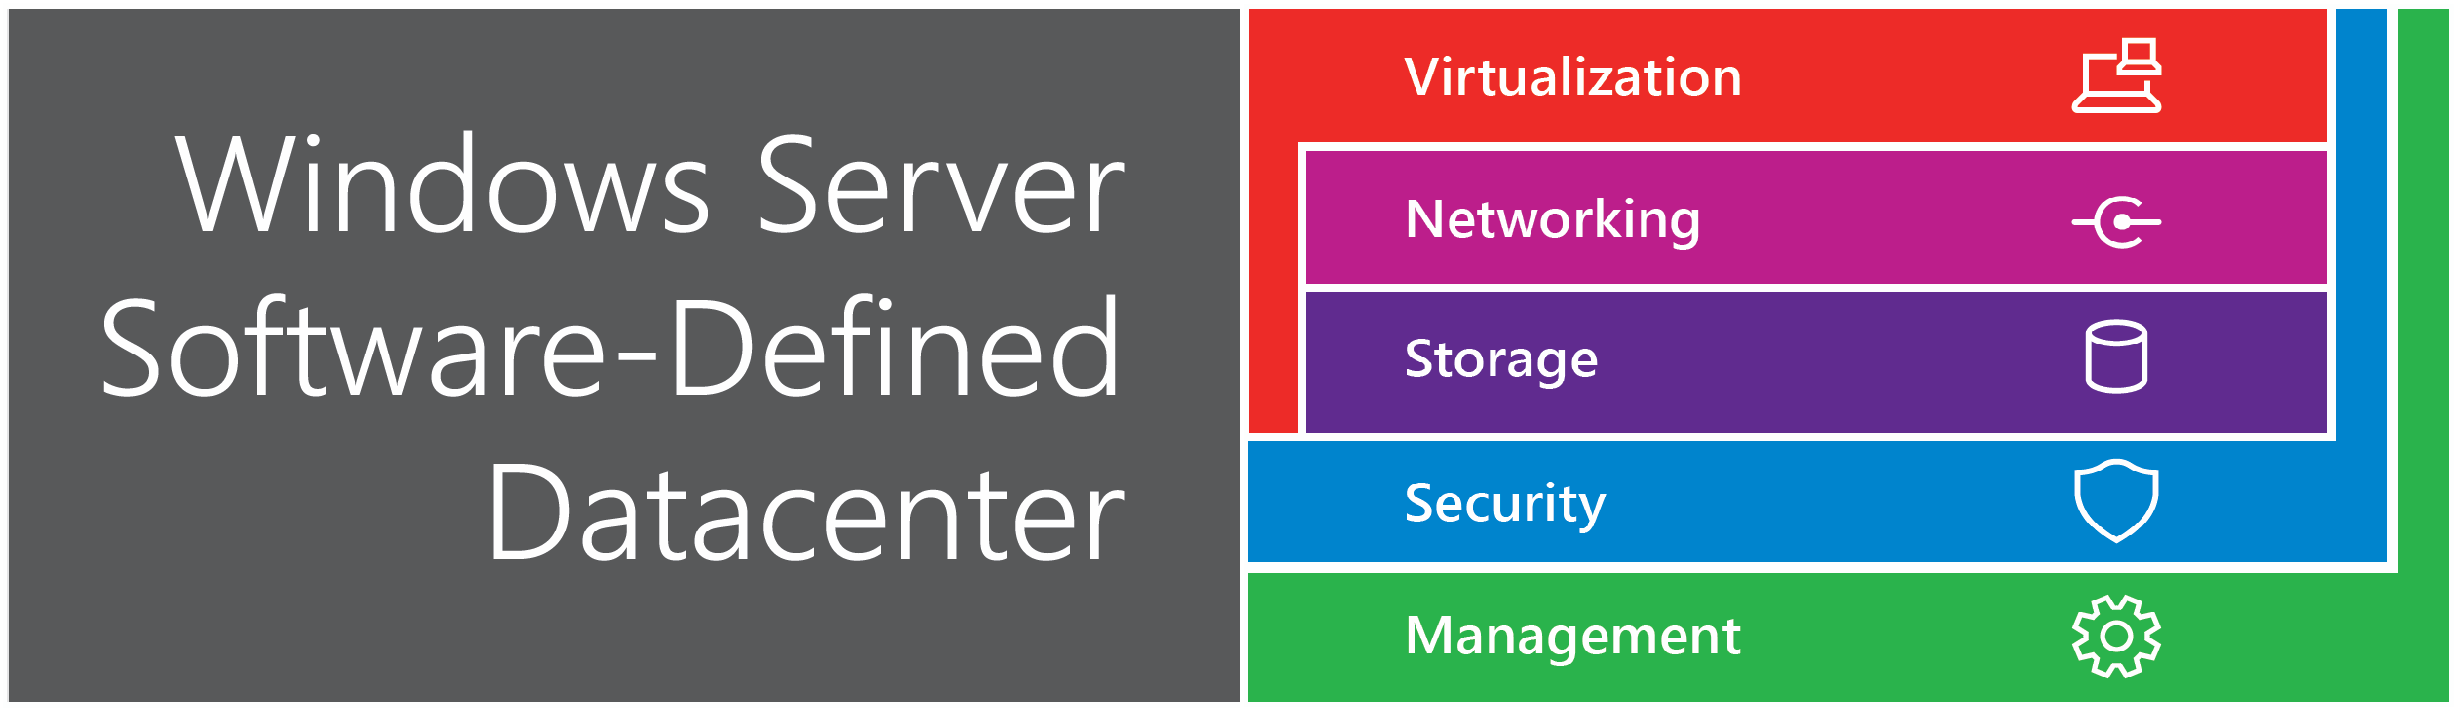 windows server software-defined datacenter | microsoft docs